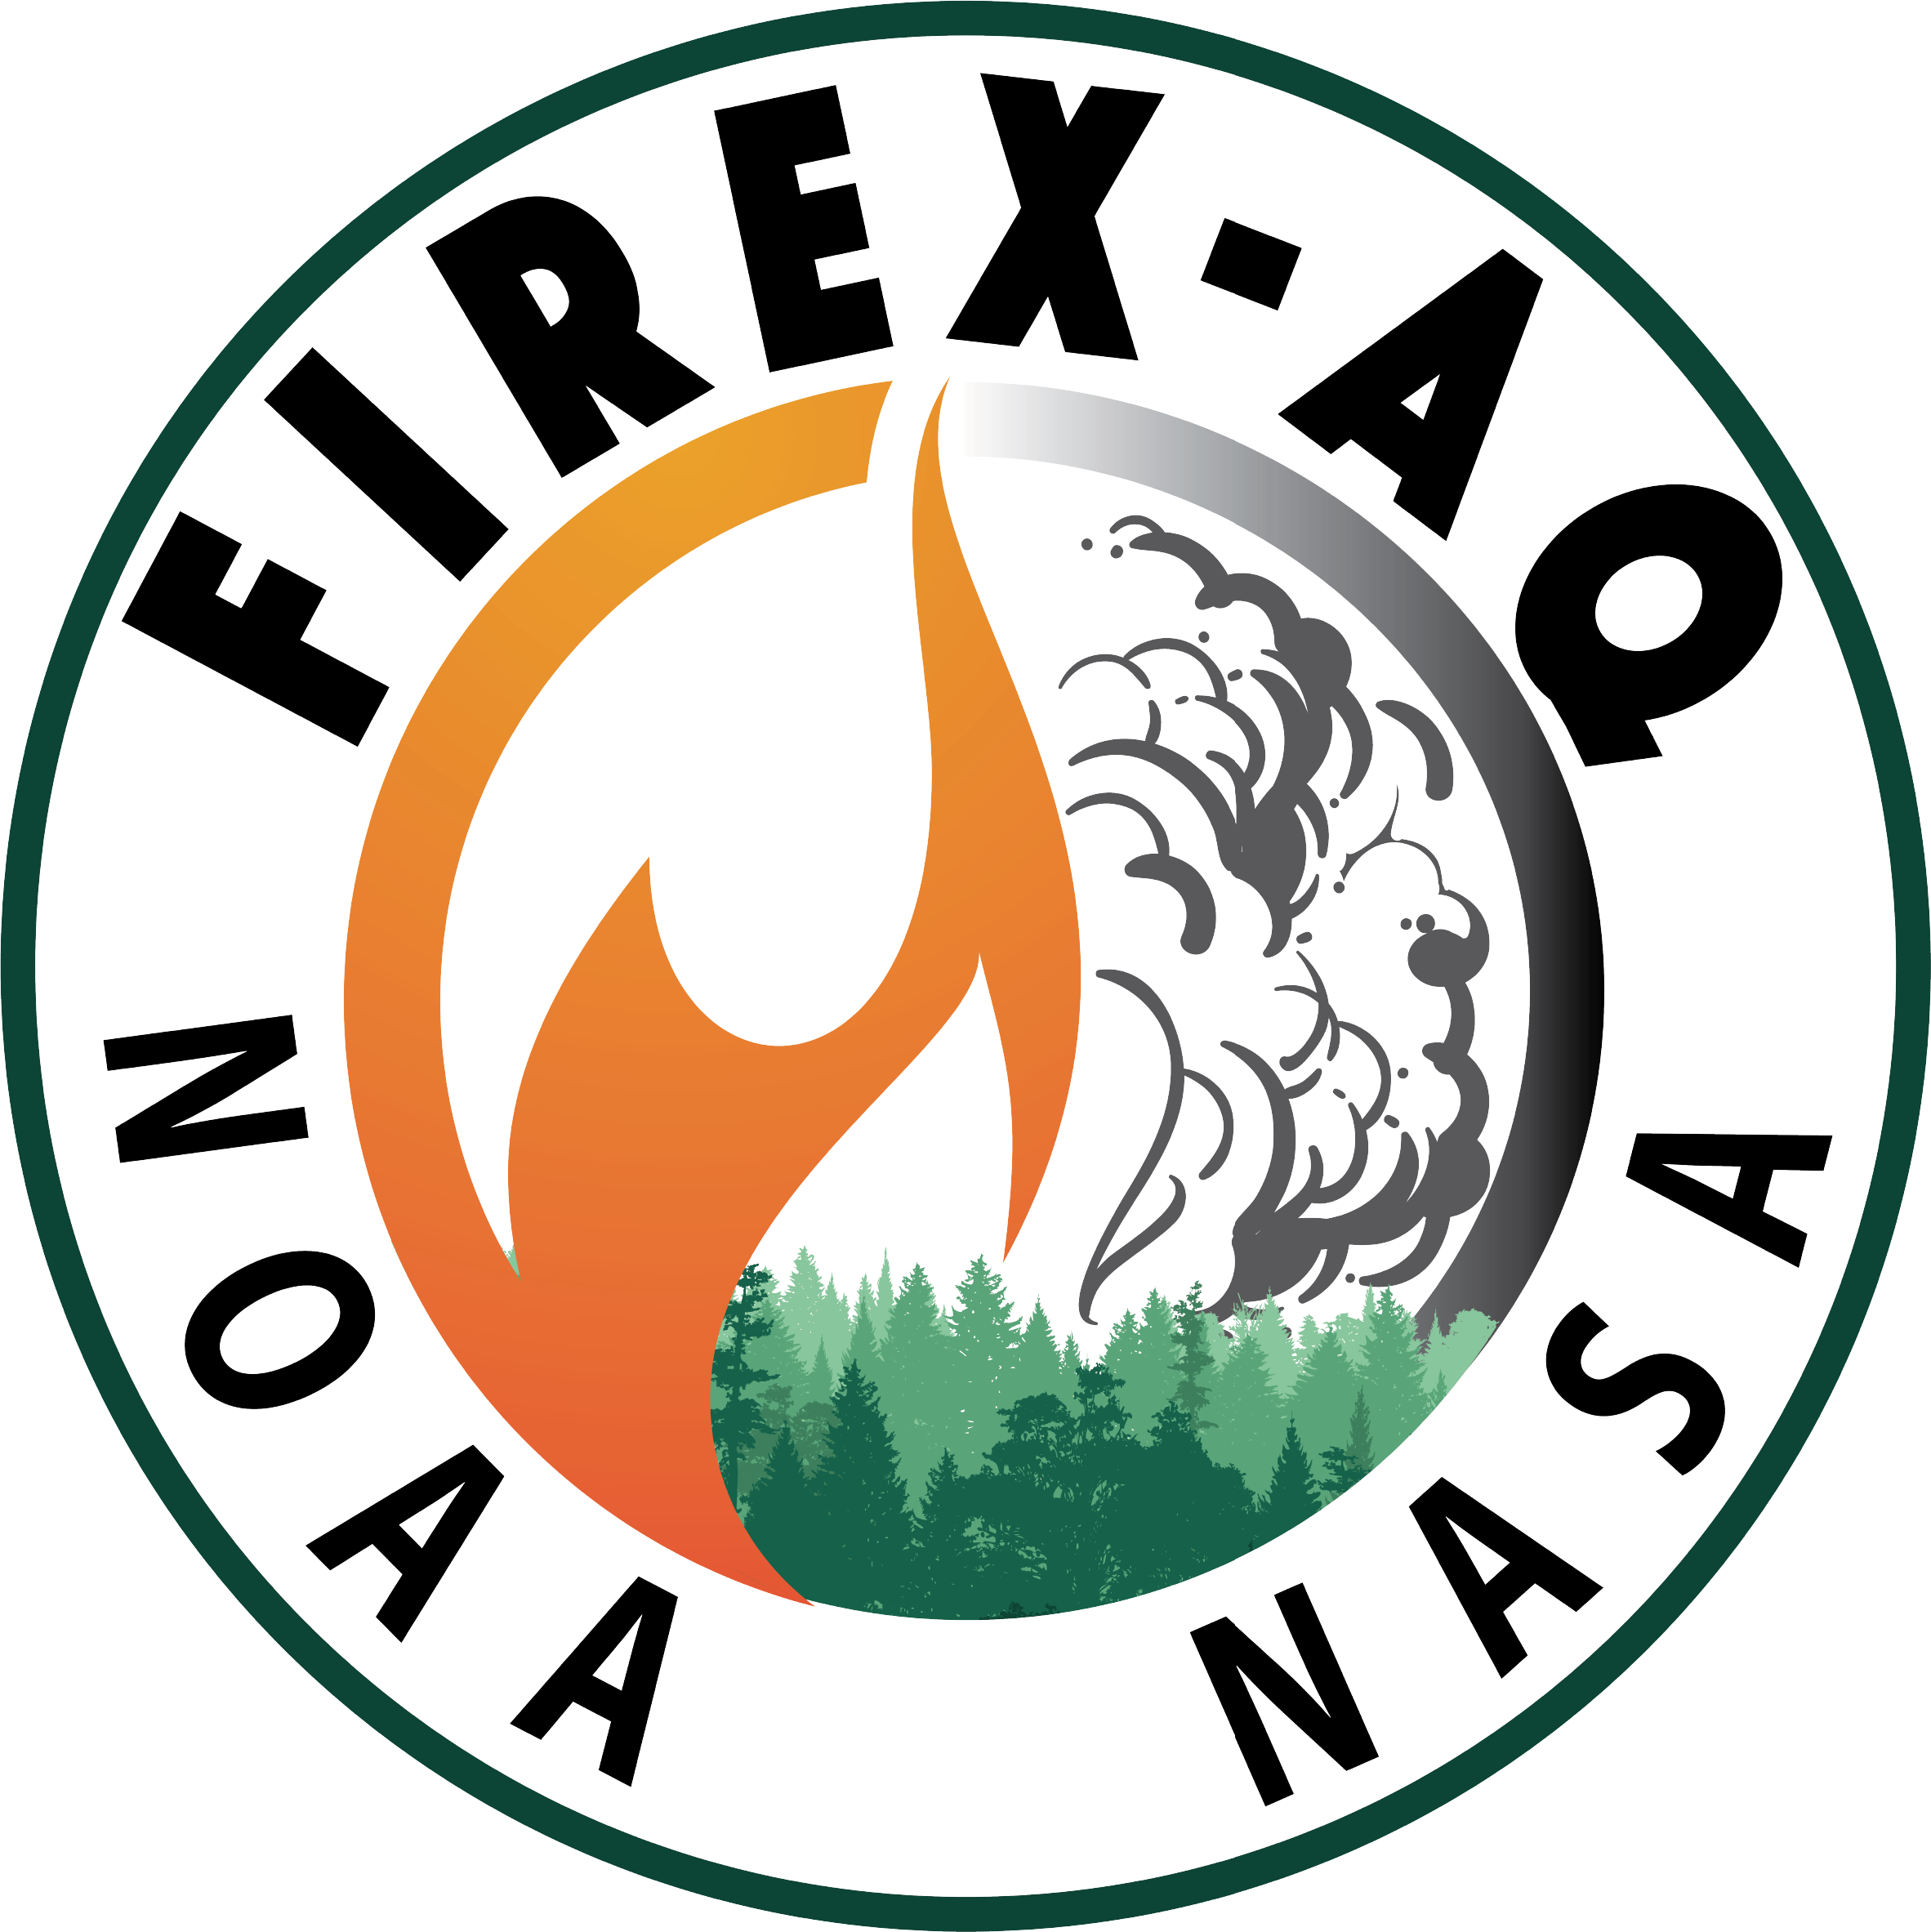 The FIREX-AQ logo is a circle with fire, smoke, and trees. NOAA and NASA are both listed.